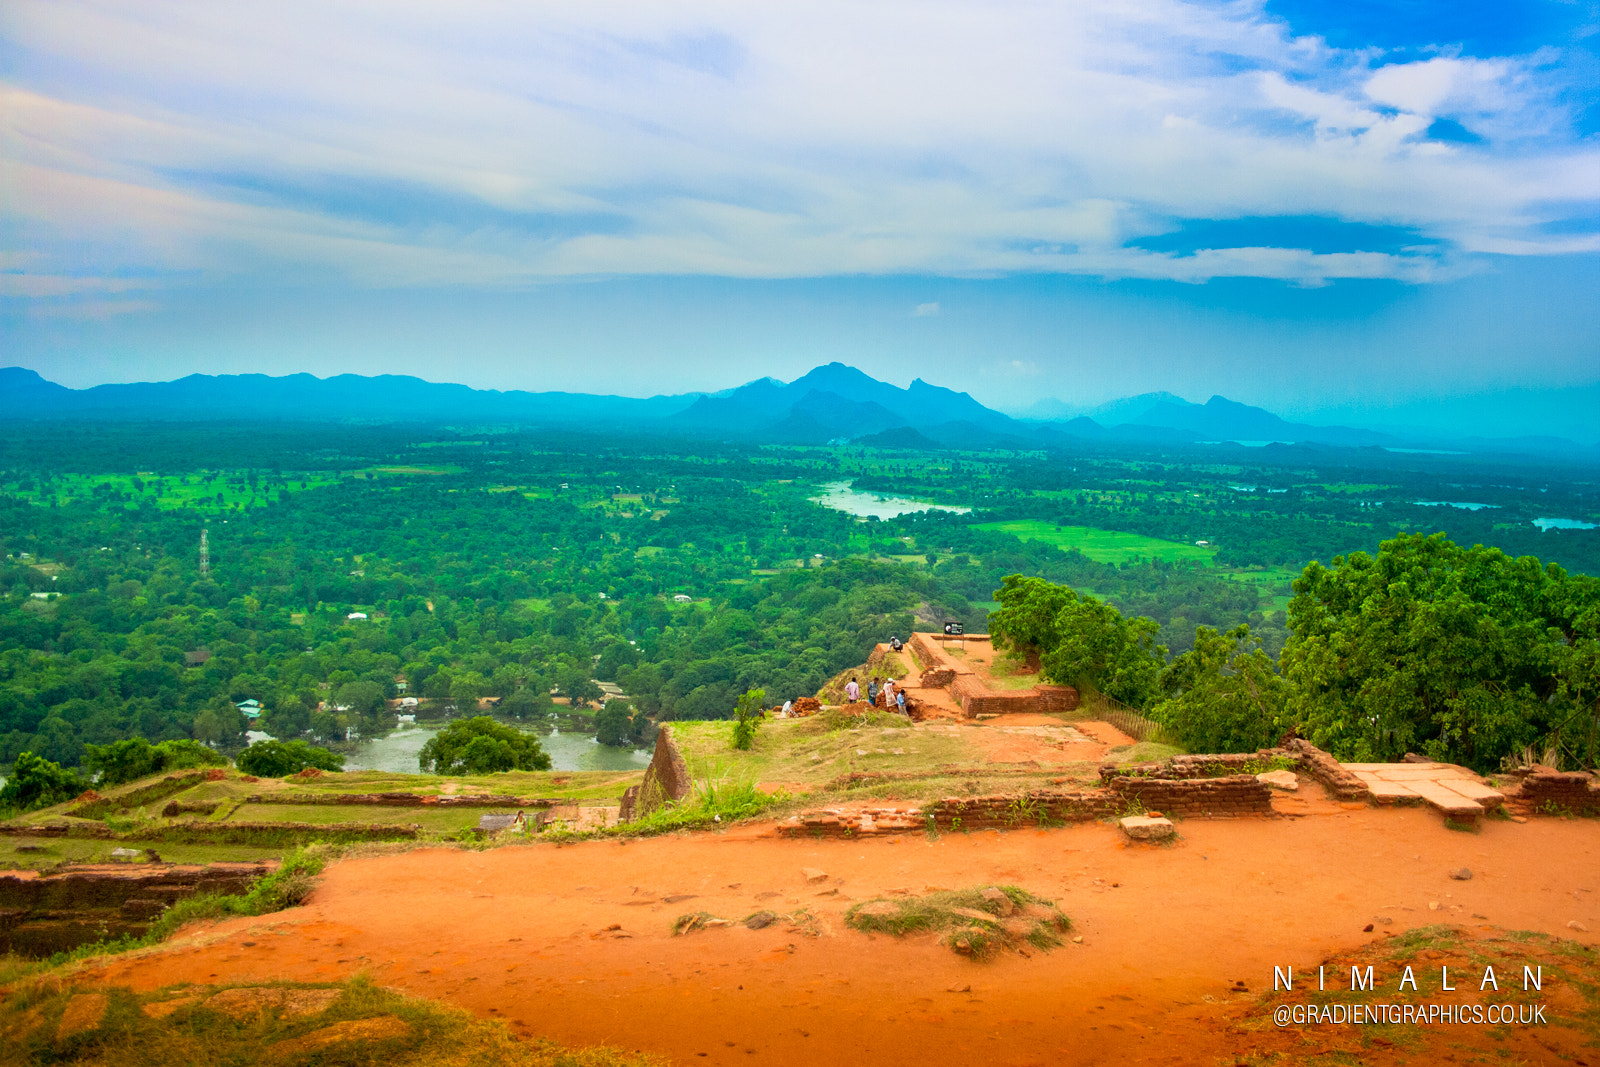 Photograph View from Sigiriya,The Lion Rock citadel, Sri Lanka by Nimalan Tharmalingam on 500px